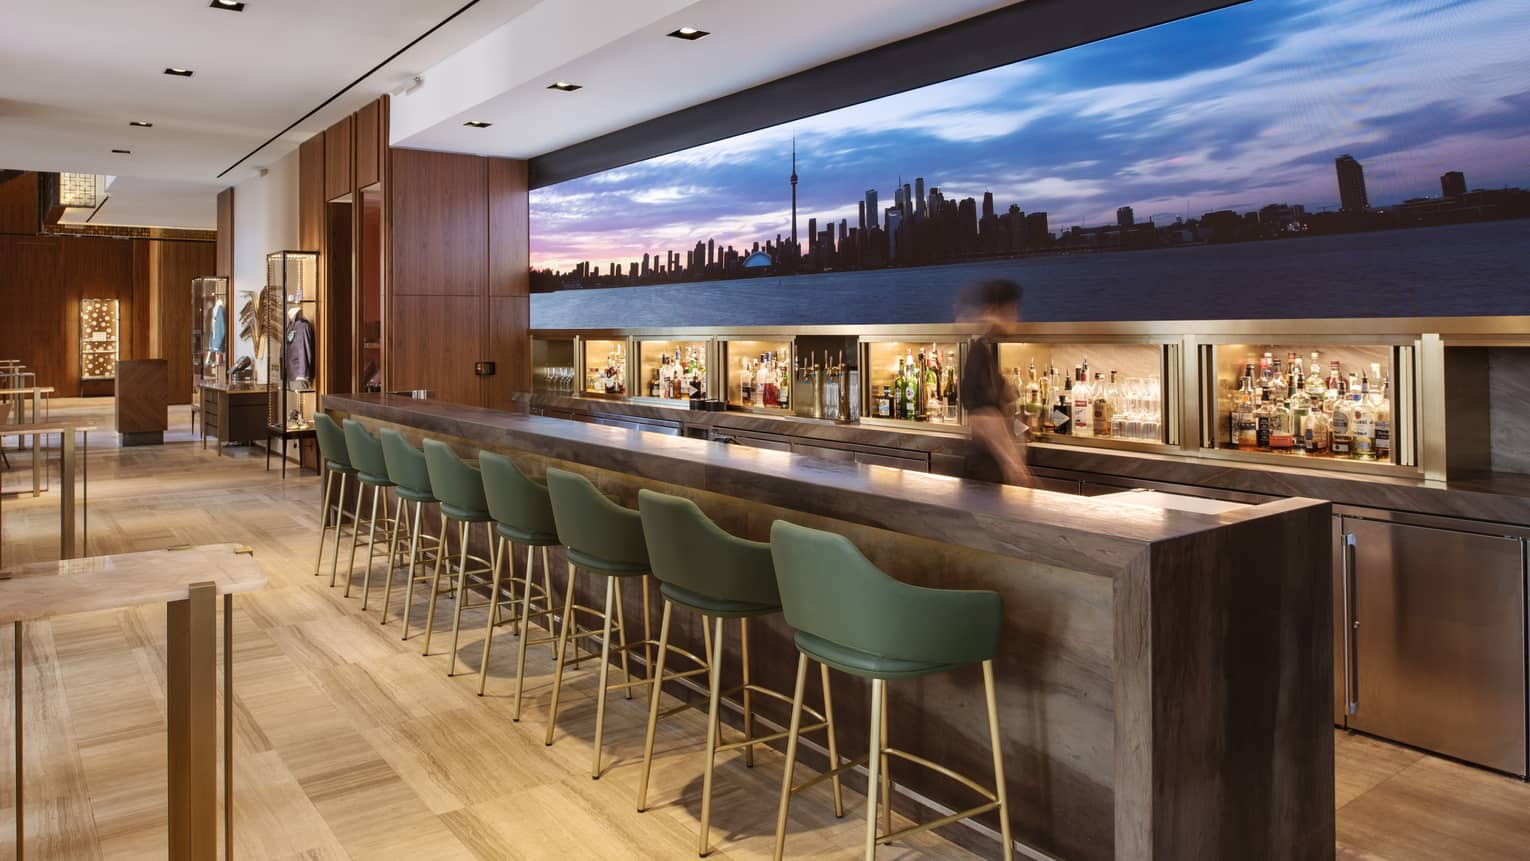 Upholstered chairs lined at a bar with a large image of the skyline